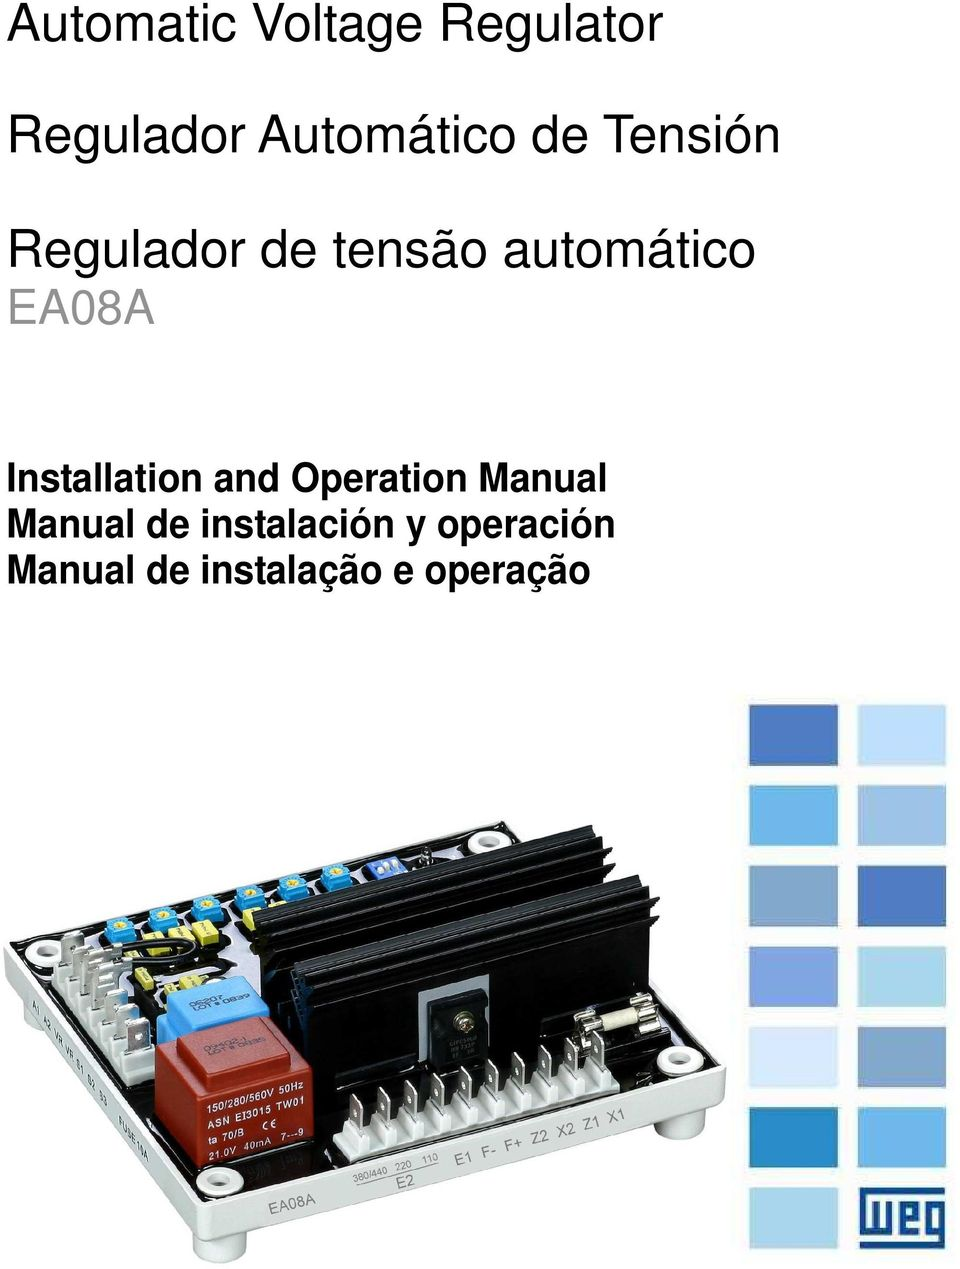 Installation and Operation Manual Manual de